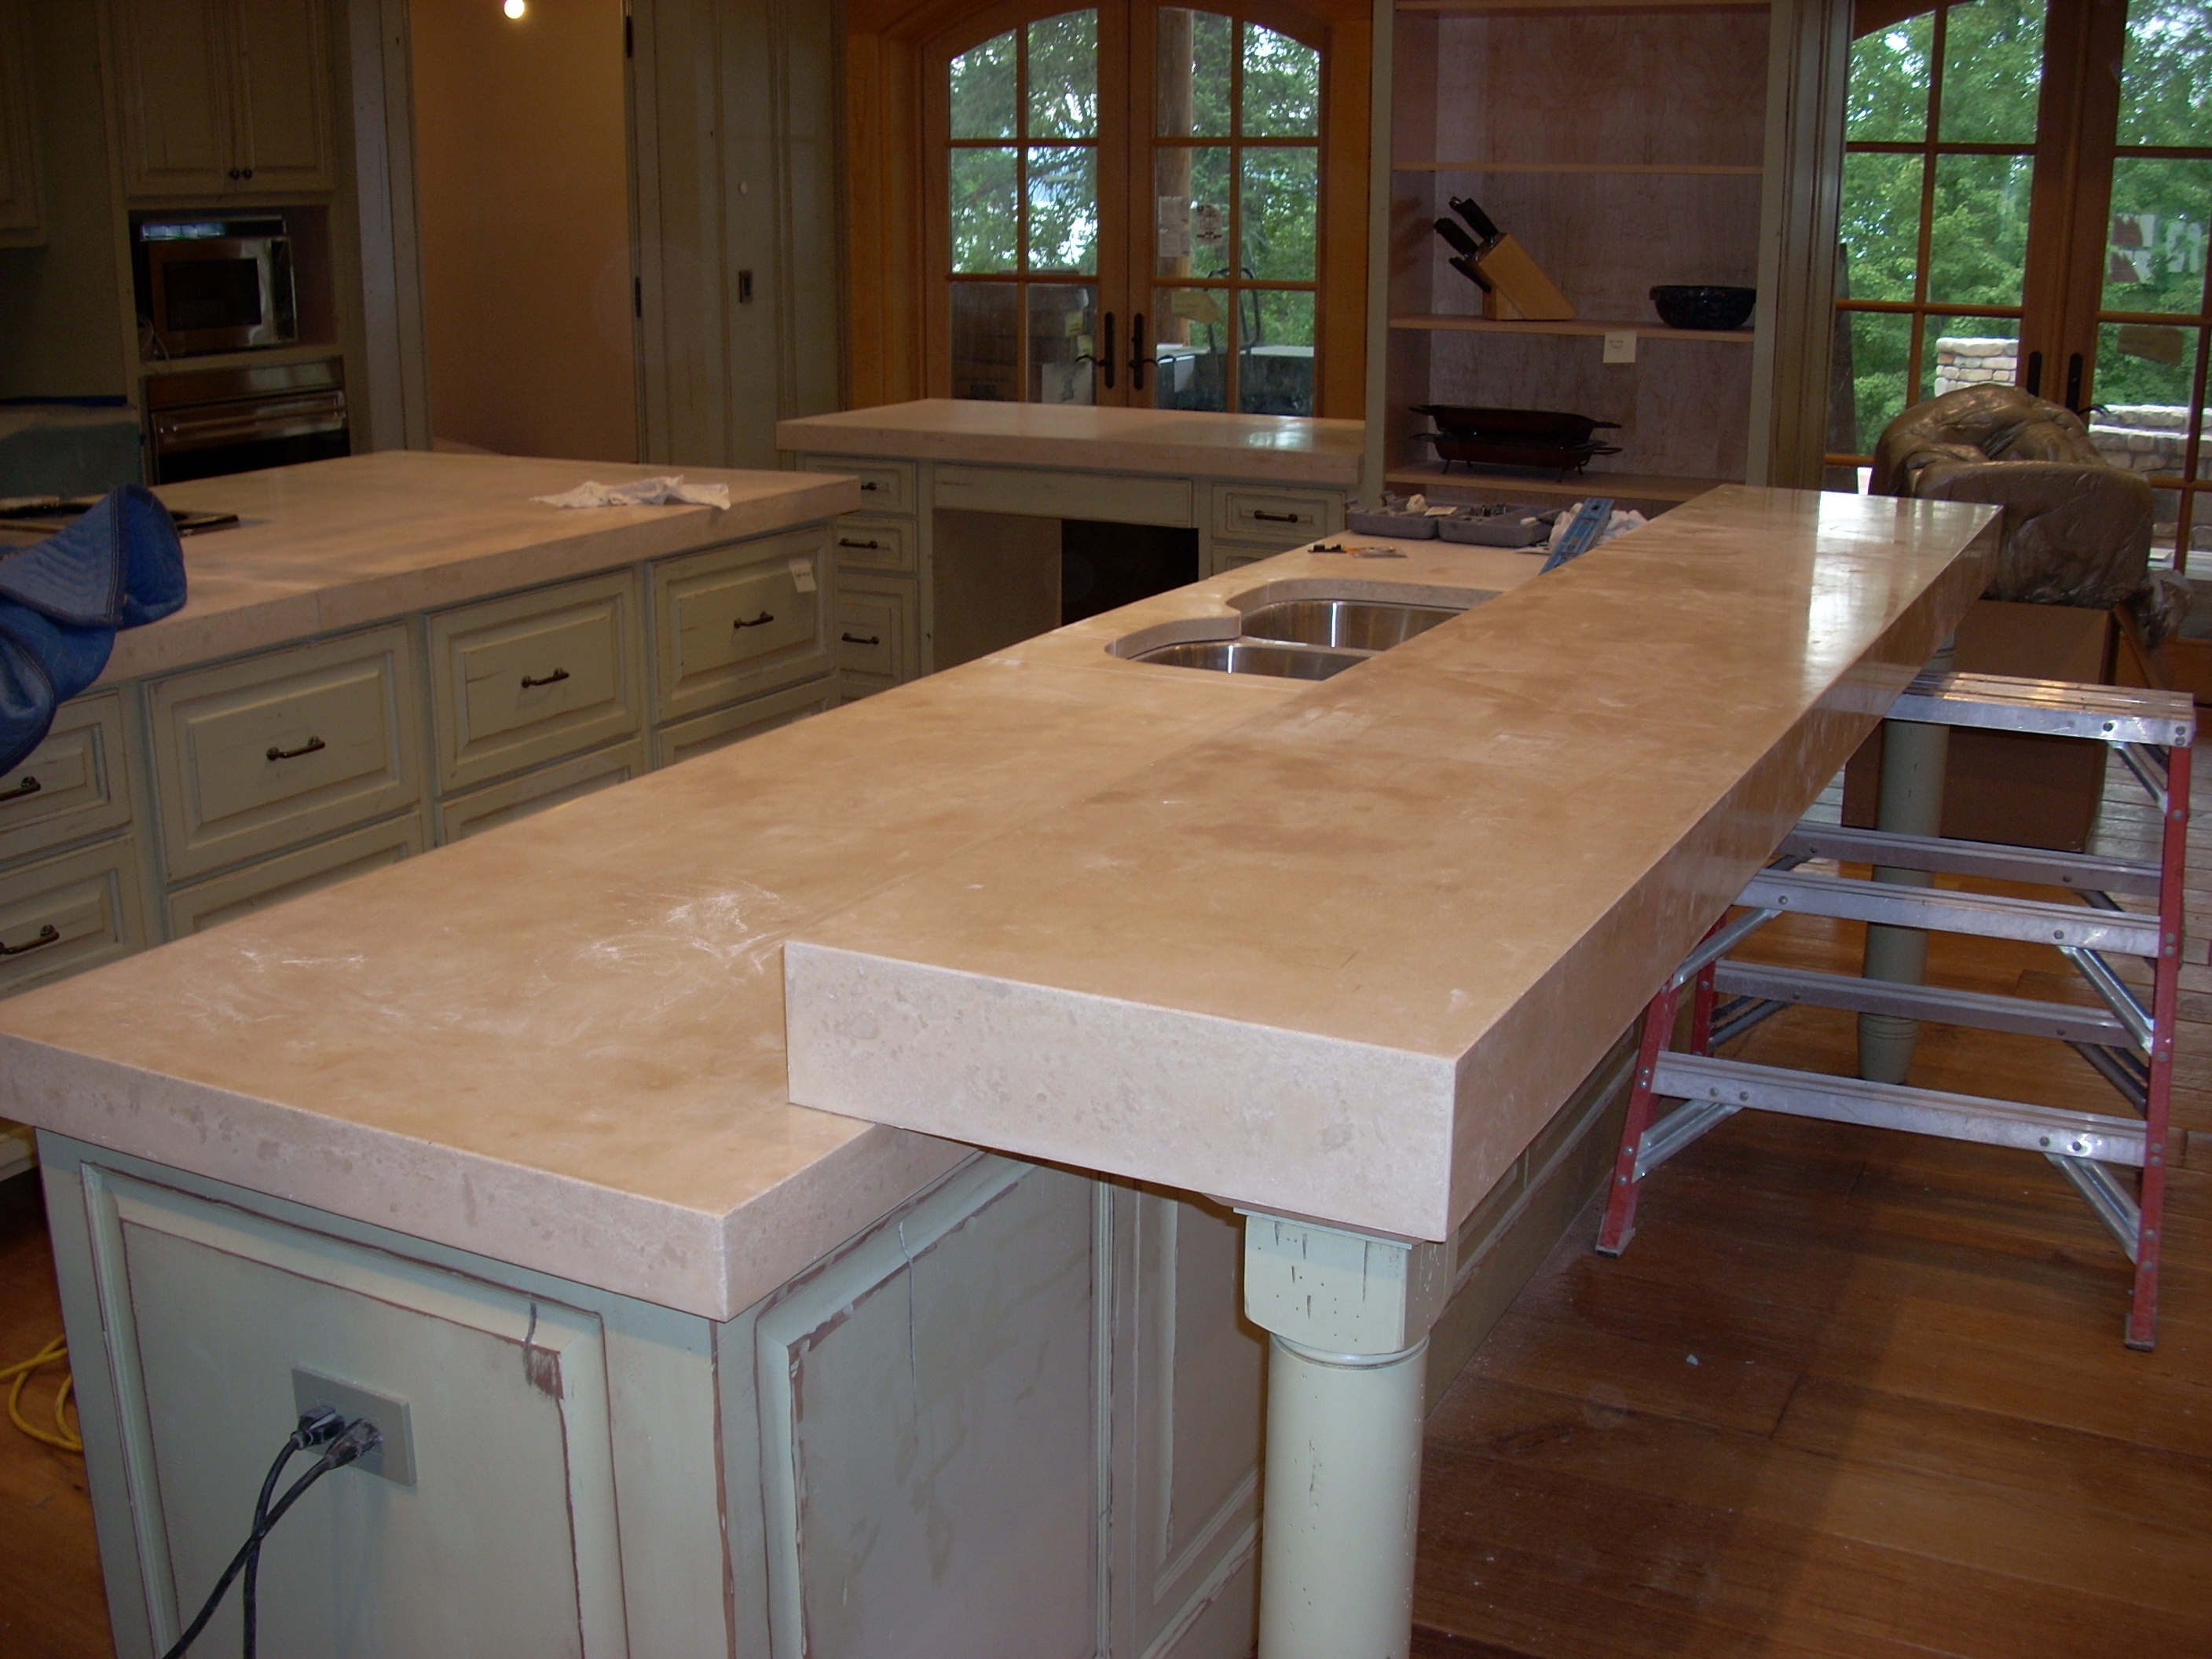 Outdoor Countertops Material Kitchen Or Outdoor Concrete Countertops Nw Concreteworks